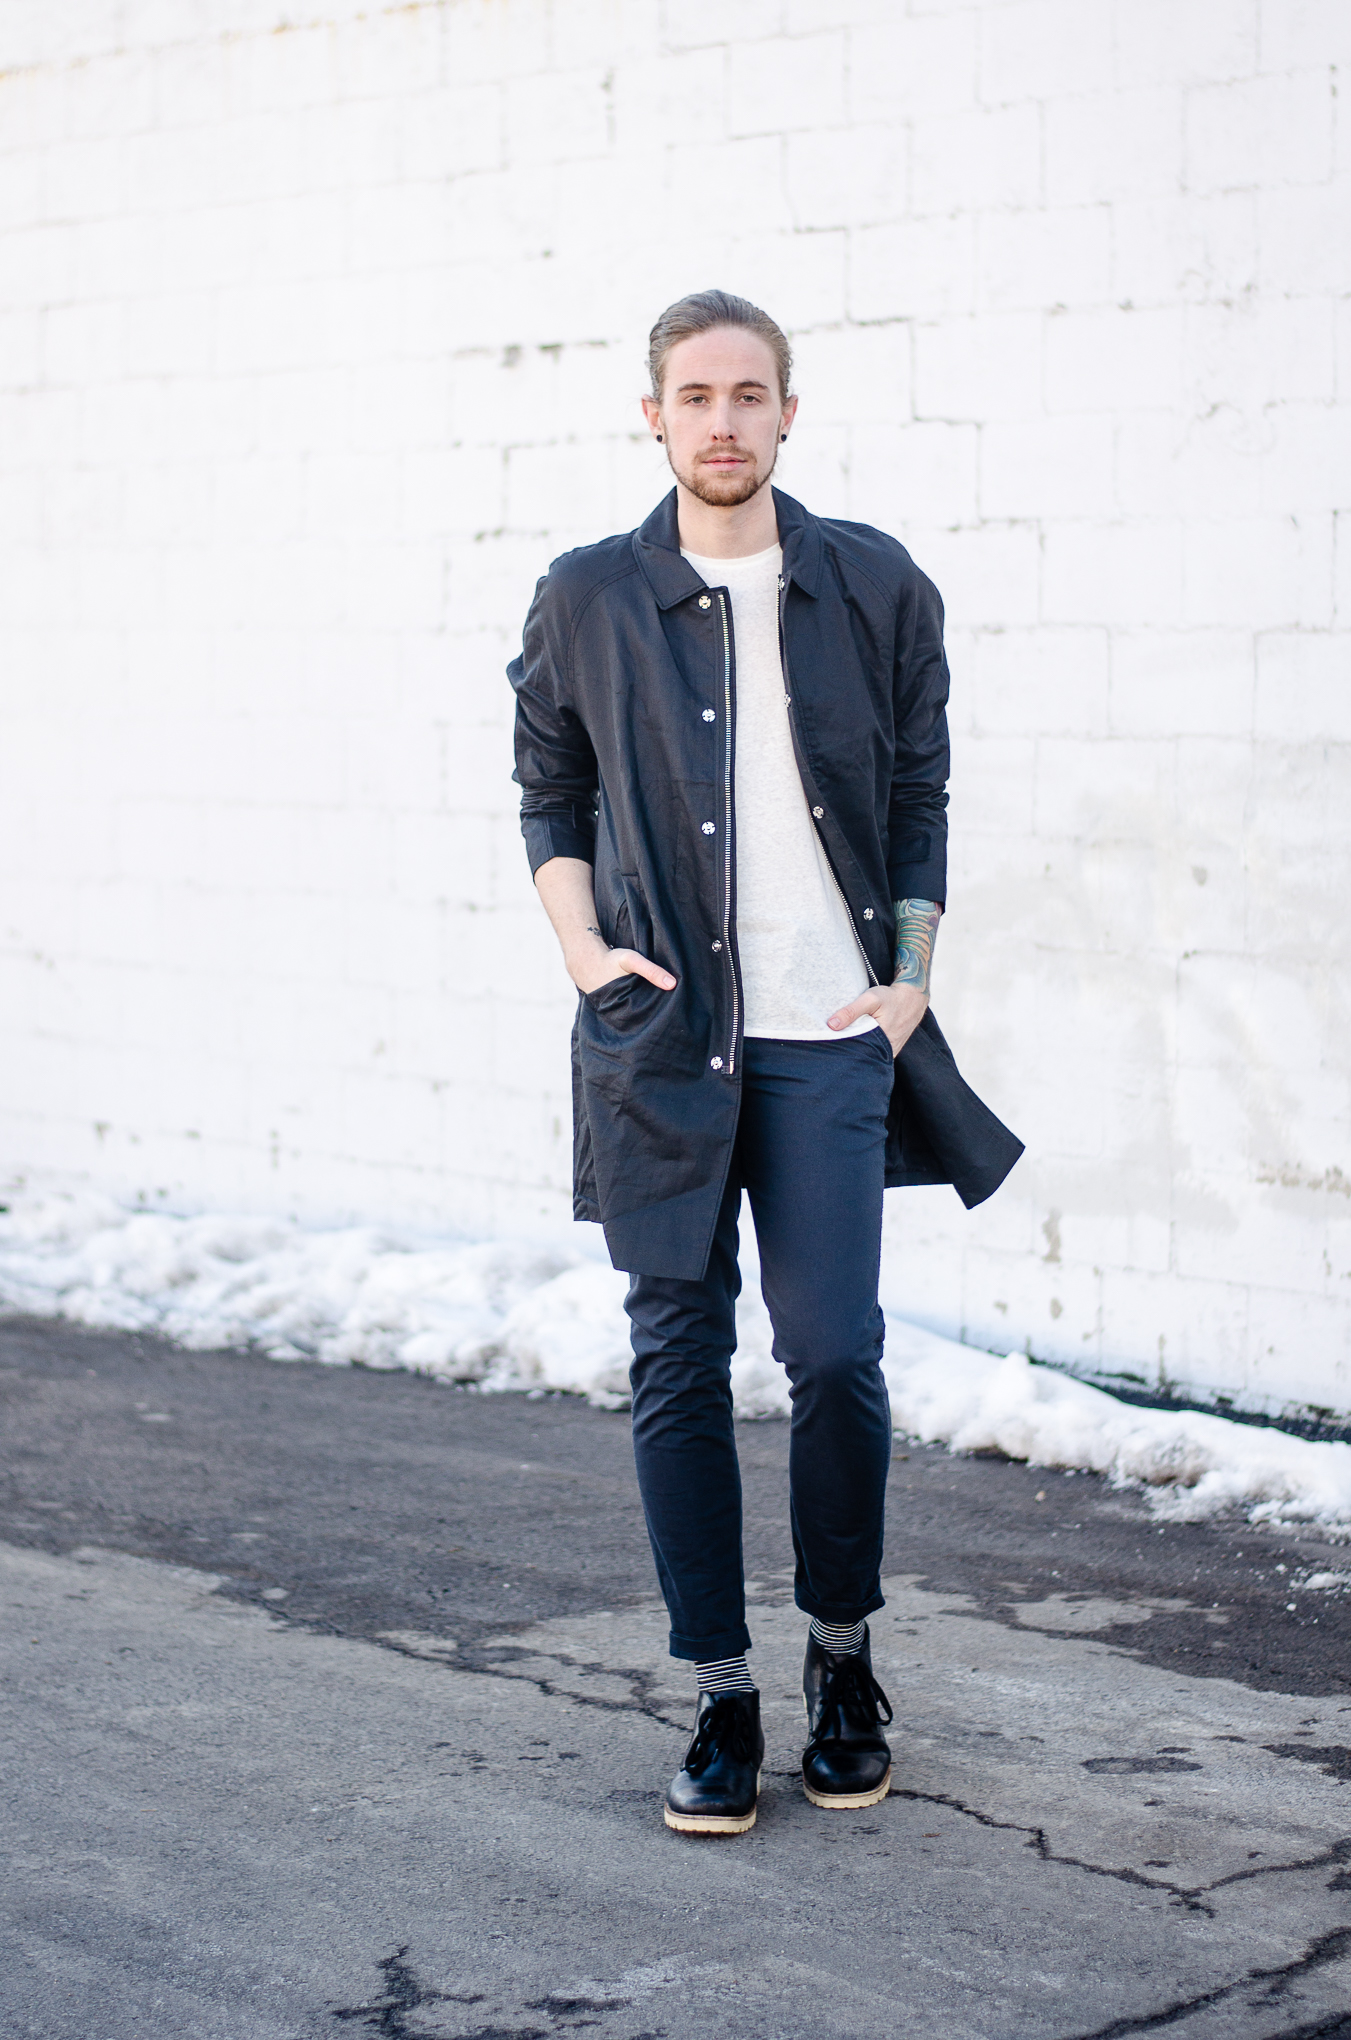 The Kentucky Gent, a men's fashion and lifestyle blogger, introduces H&M's Modern Essentials Selected by David Beckham.